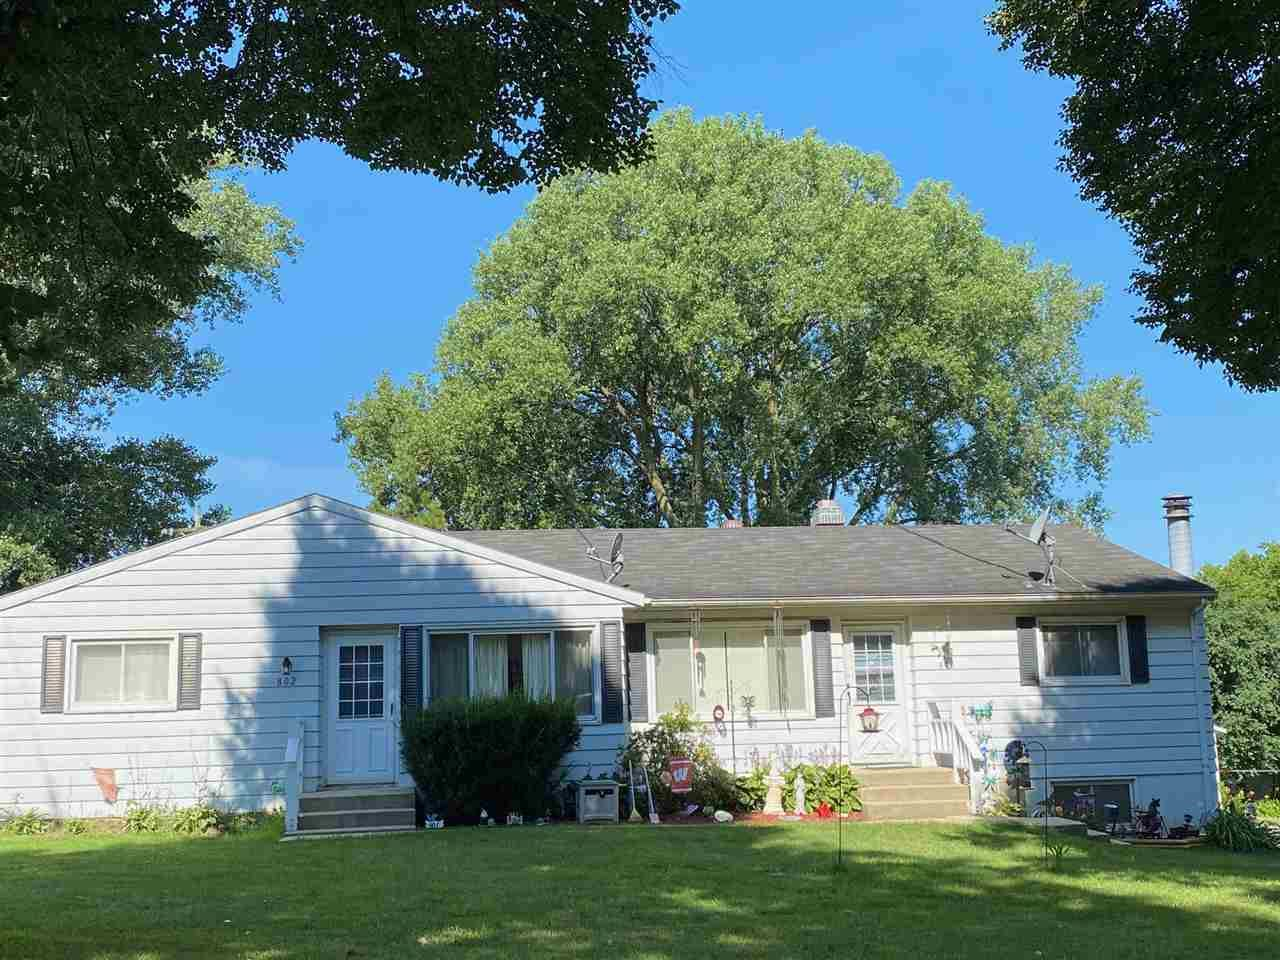 802 Ziegler Rd, Madison, WI 53714 - #: 1889275